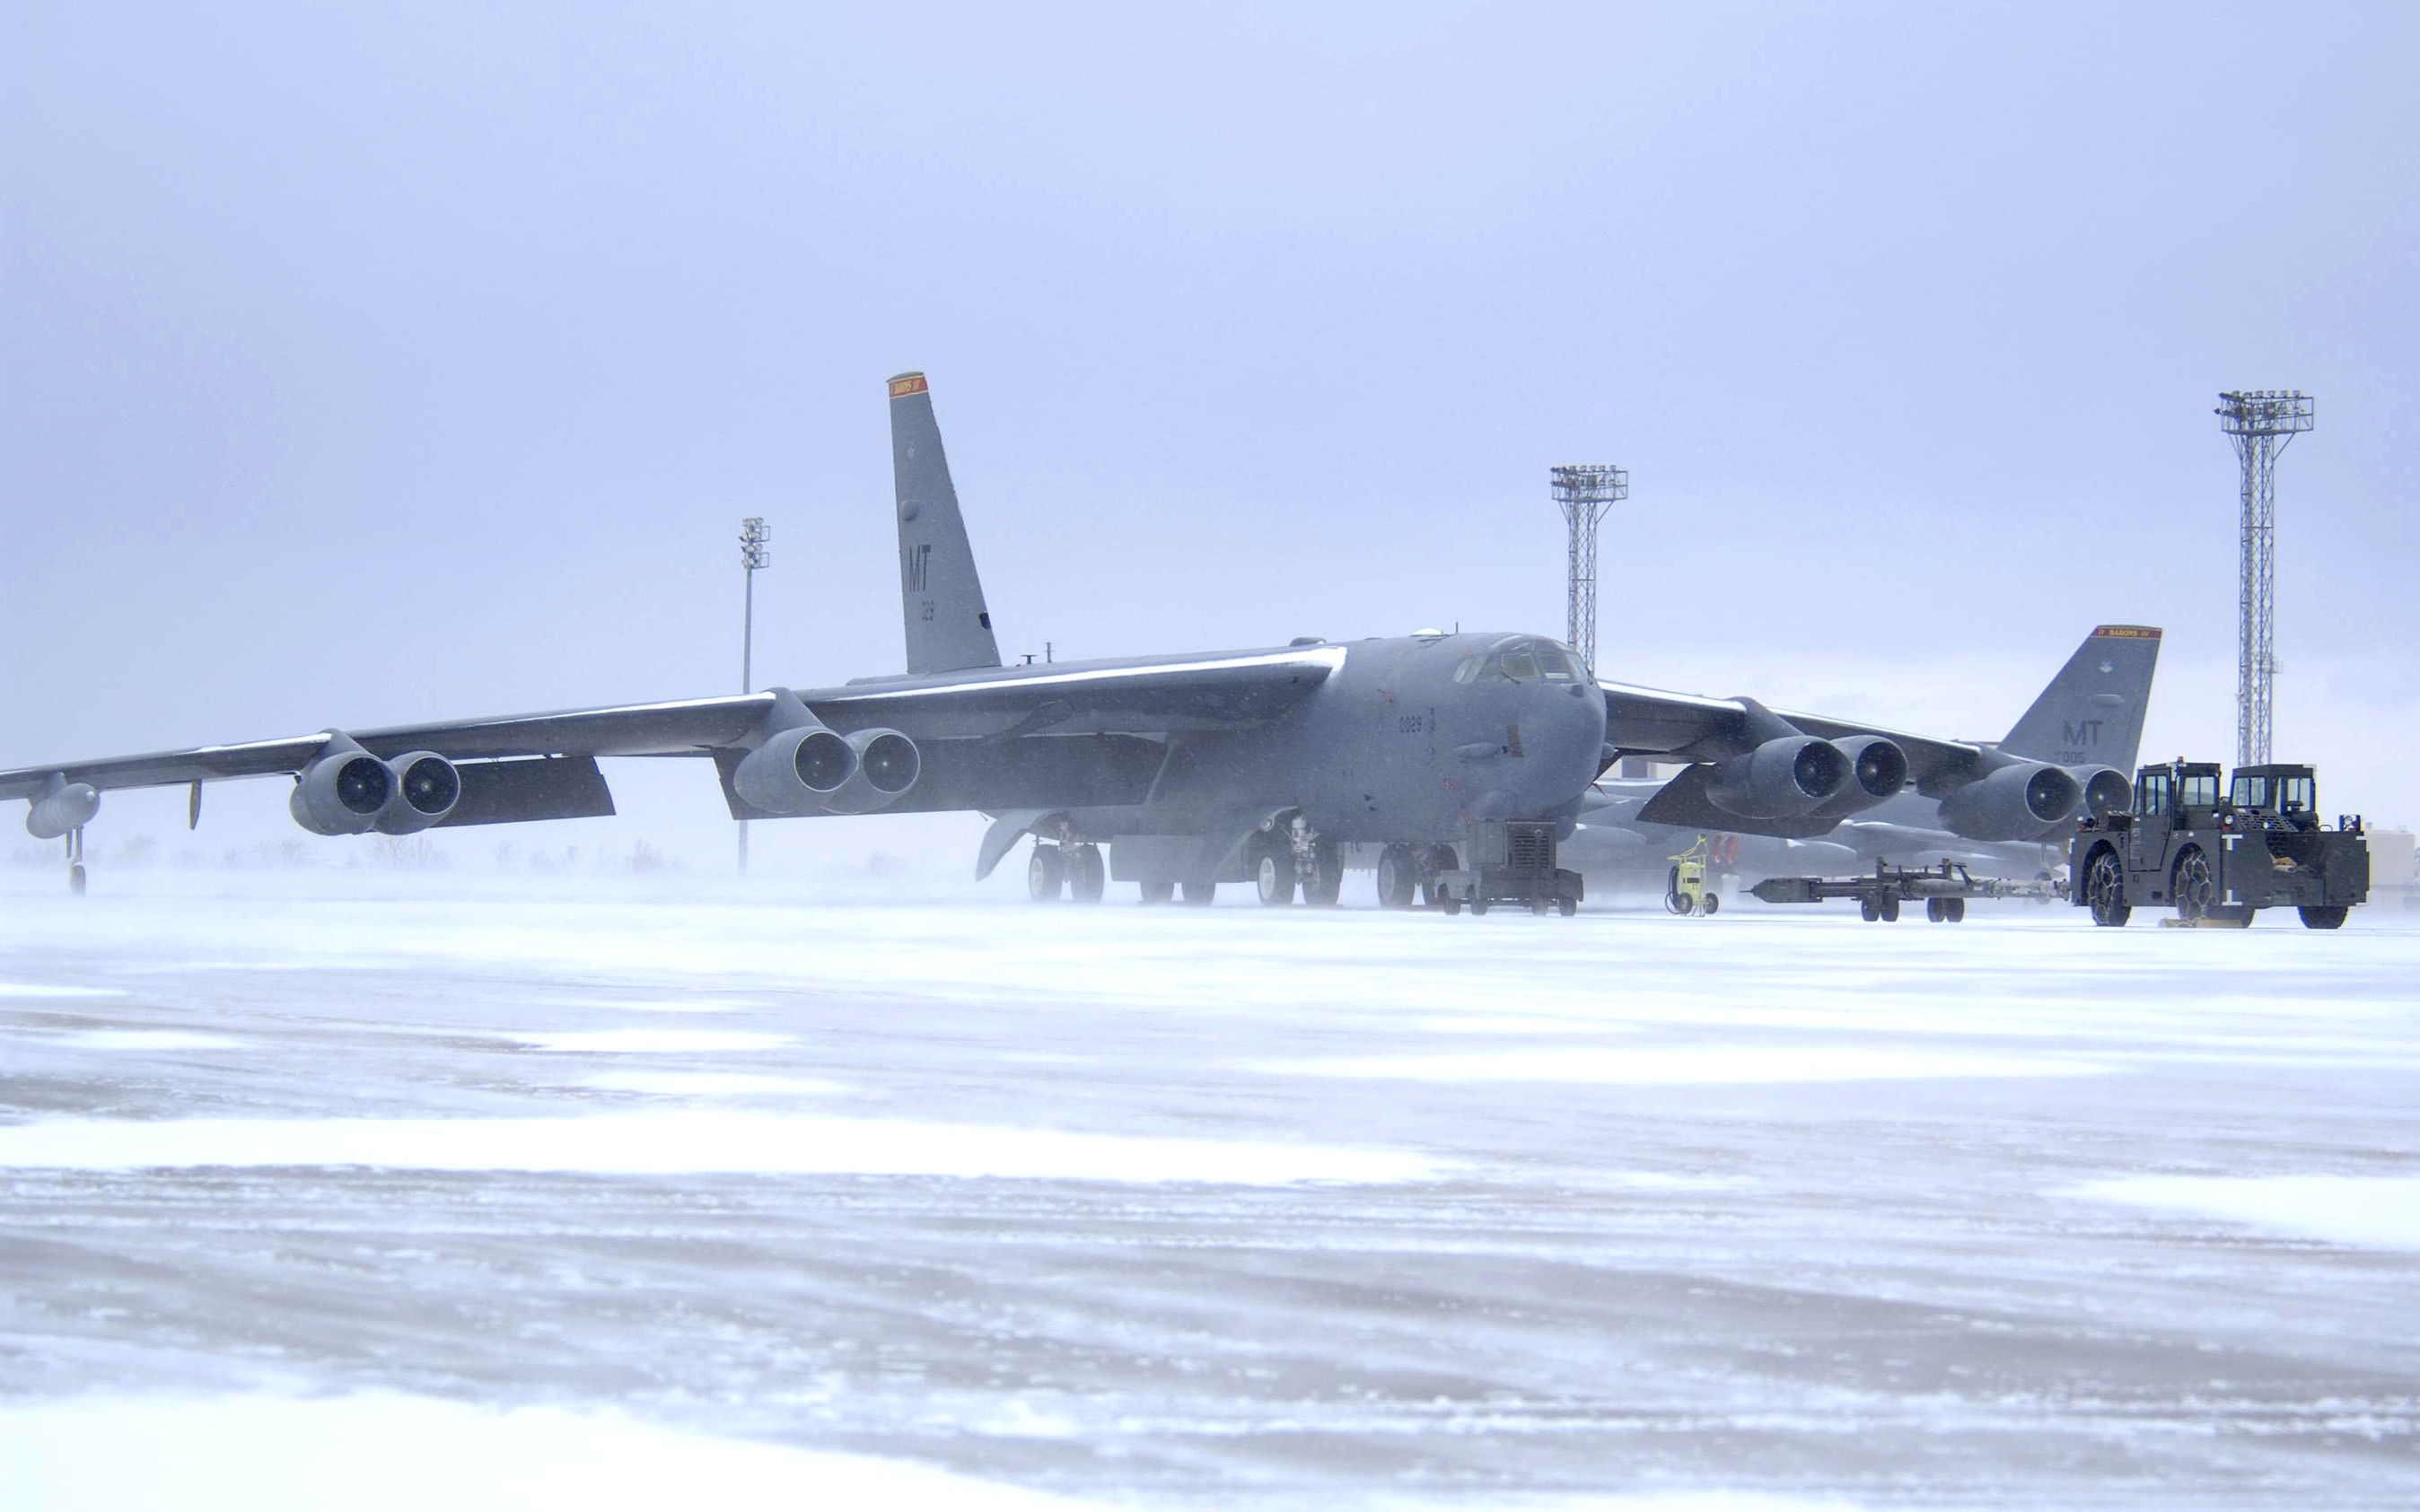 Aircraft military cold Arctic HD Wallpaper